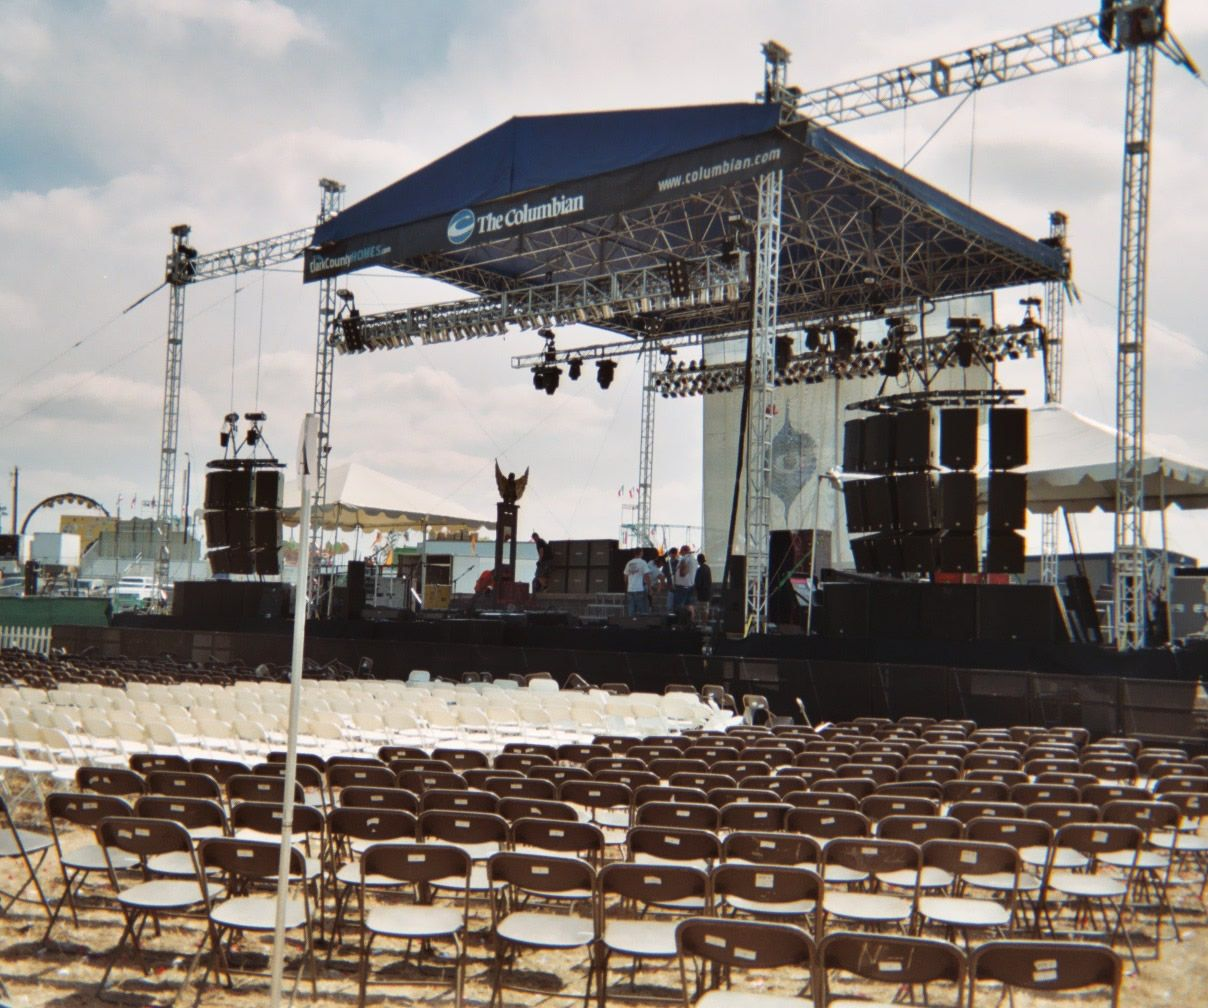 Truss Systems Global Truss Roof Trusses Systems Portable Stage Stage For Sale Roof Trusses